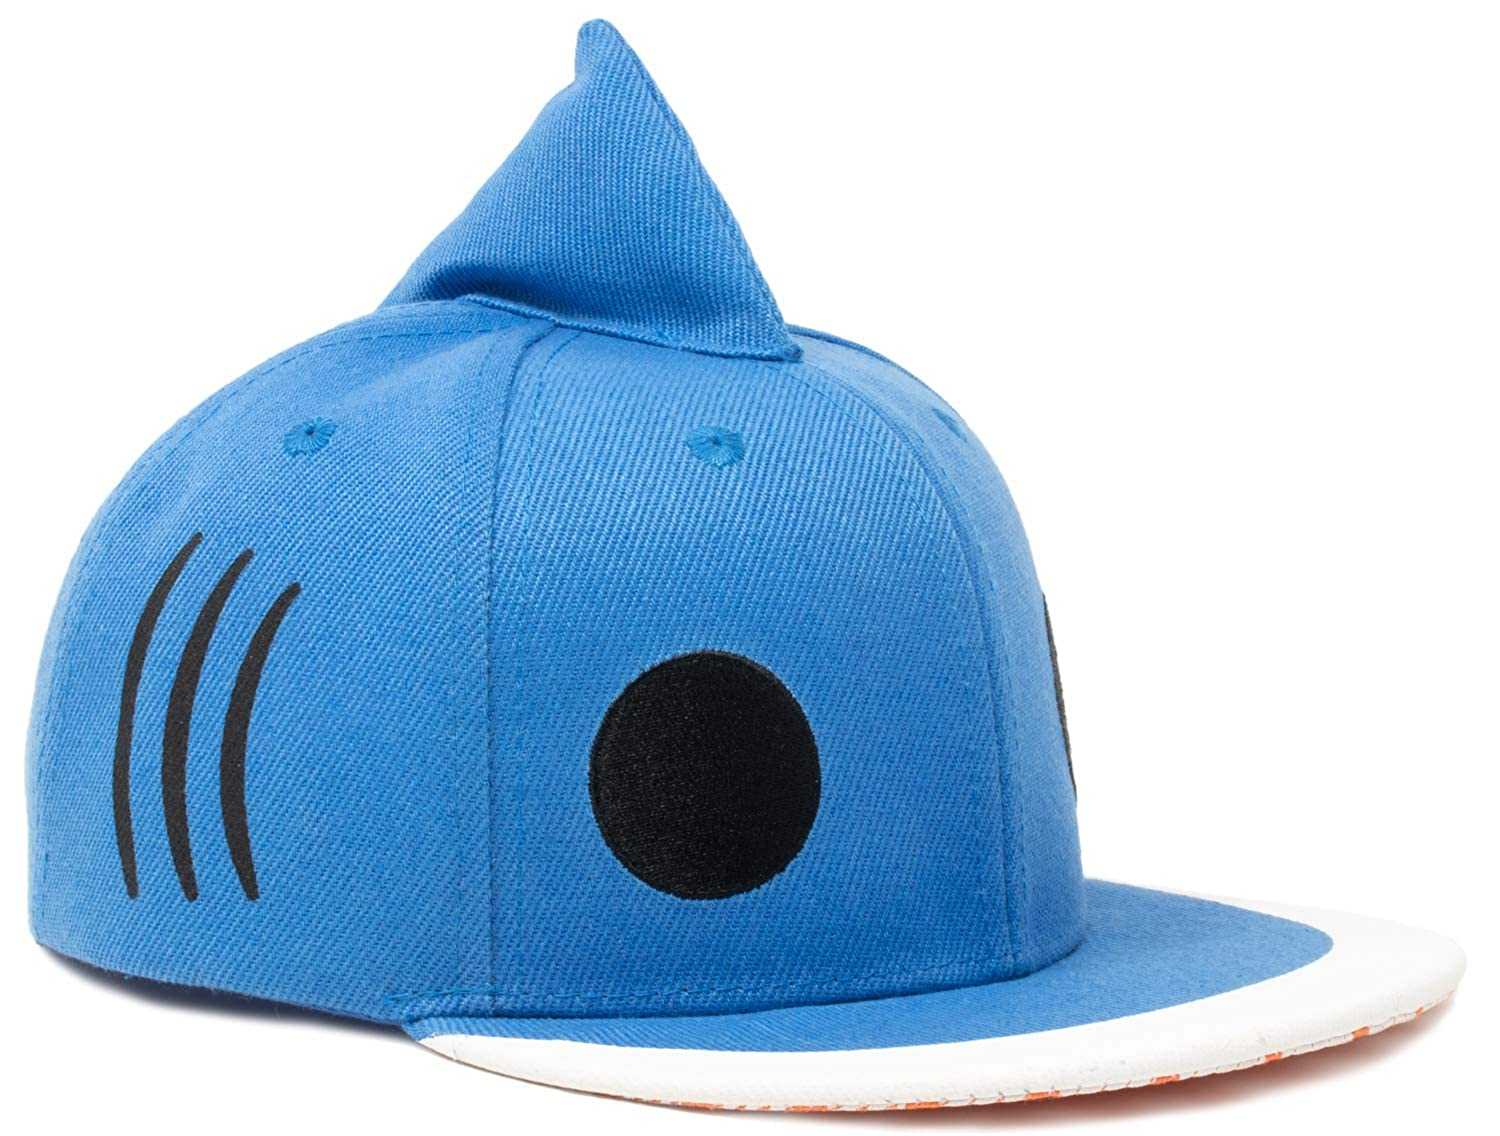 Kid's Sharky Hat | Children's Shark Fin Baseball Cap Boy Girl Child Fun Animal Blue